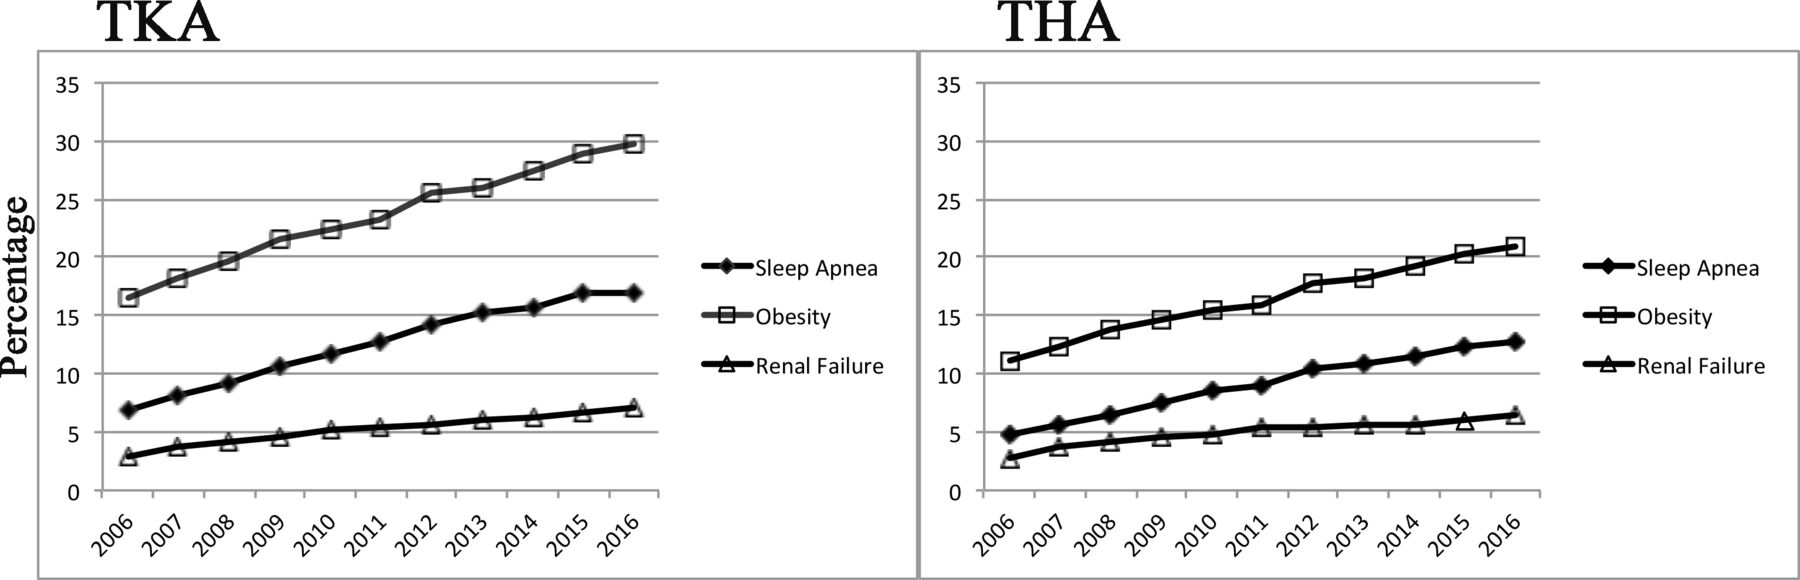 Trends in total knee and hip arthroplasty recipients: a